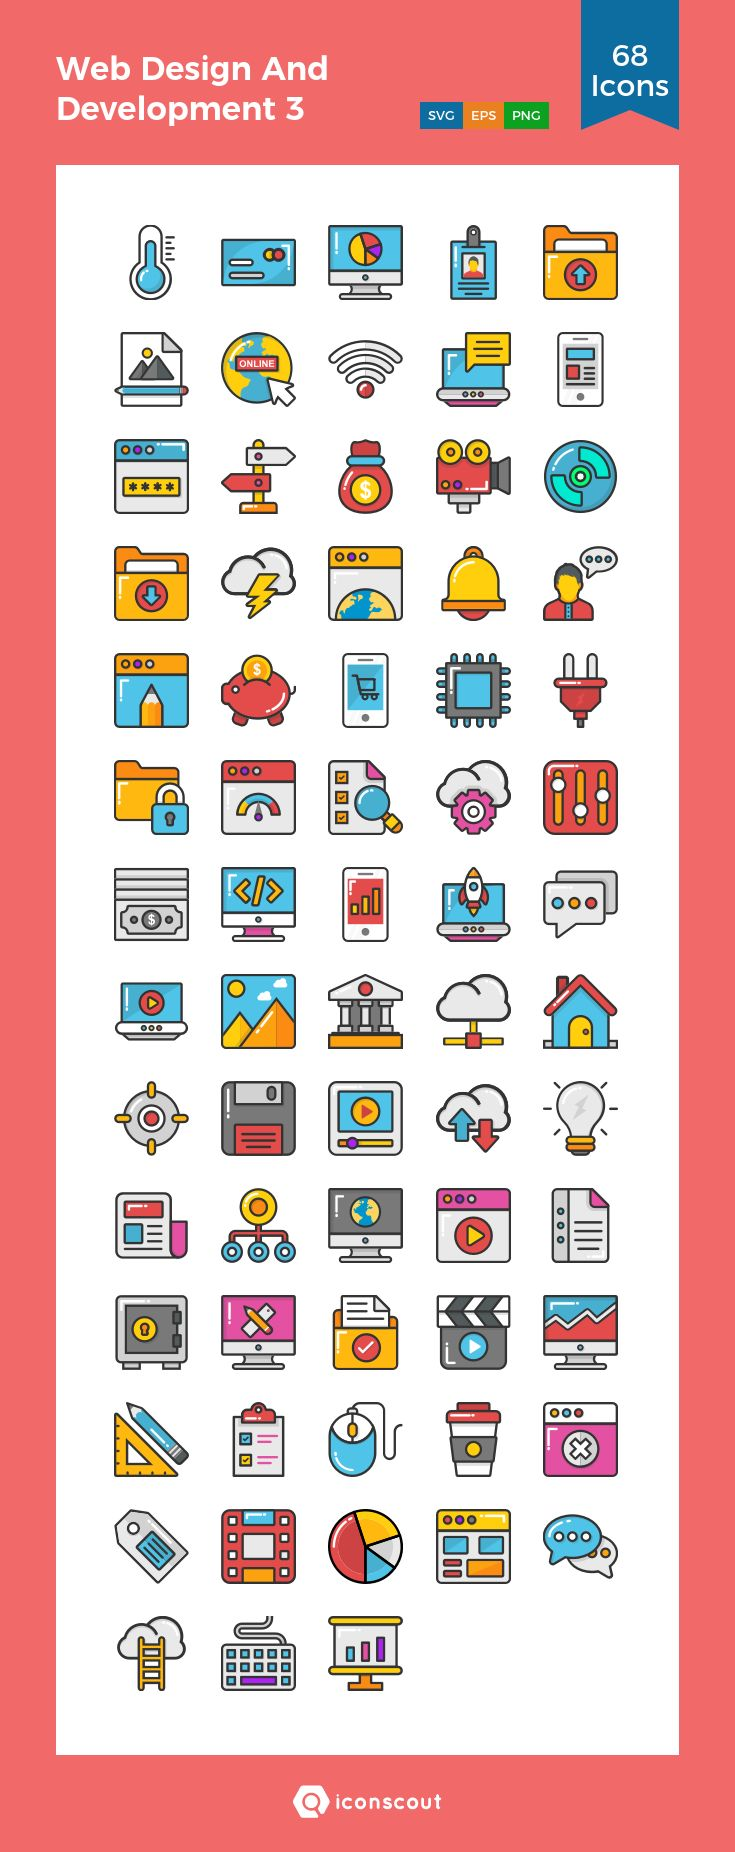 Web Design And Development 3  Icon Pack - 68 Filled Outline Icons